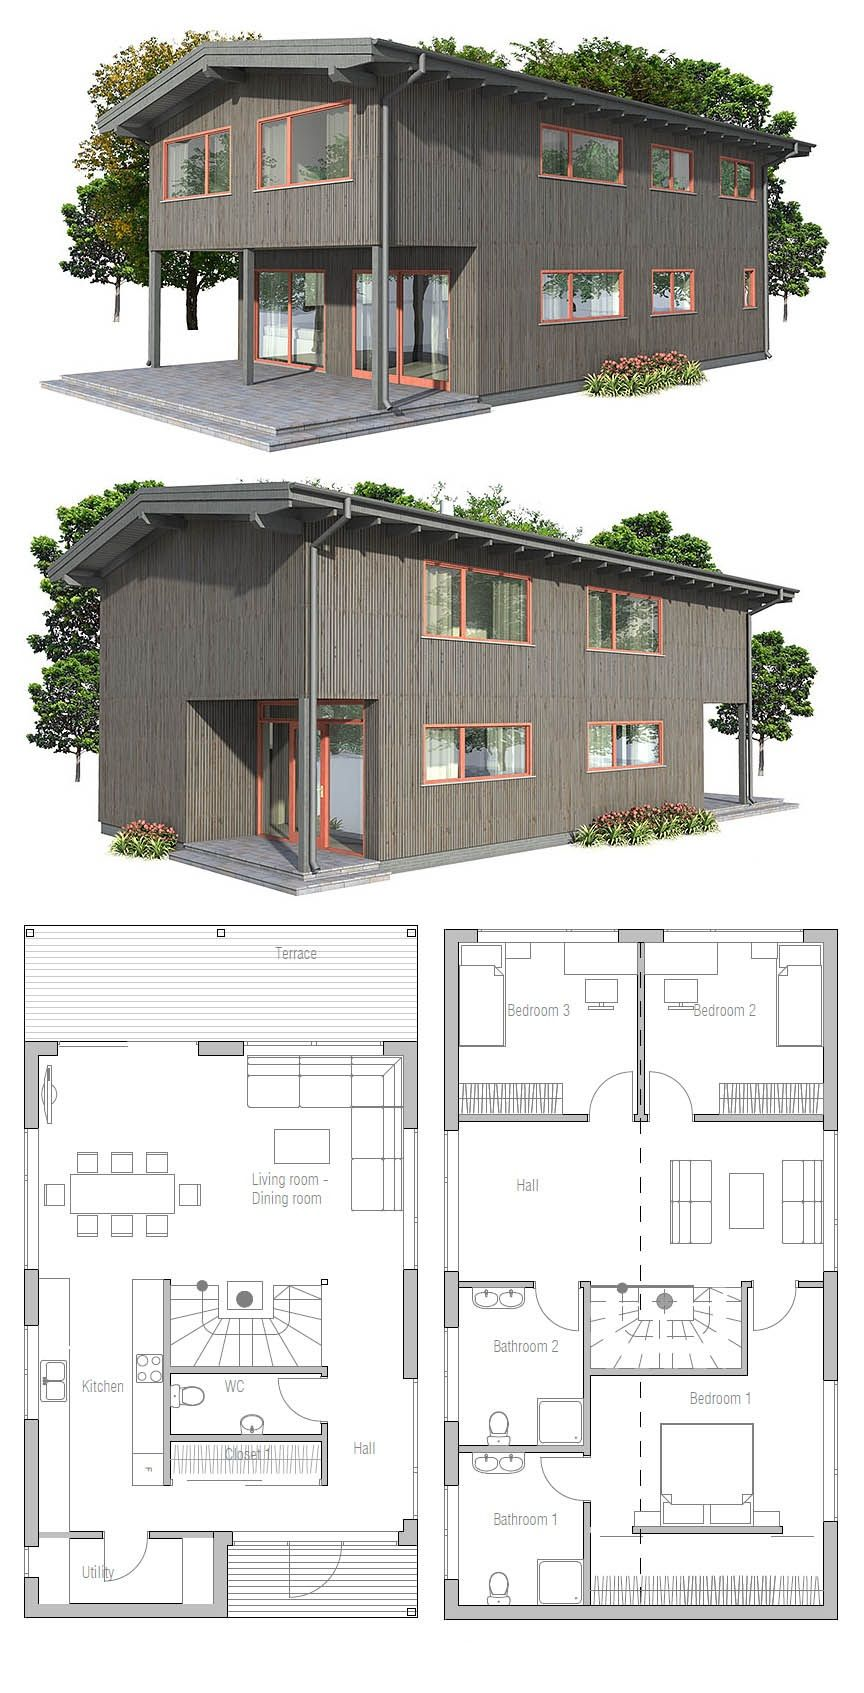 Plan de maison dream homes en 2018 pinterest for Casa minimalista economica